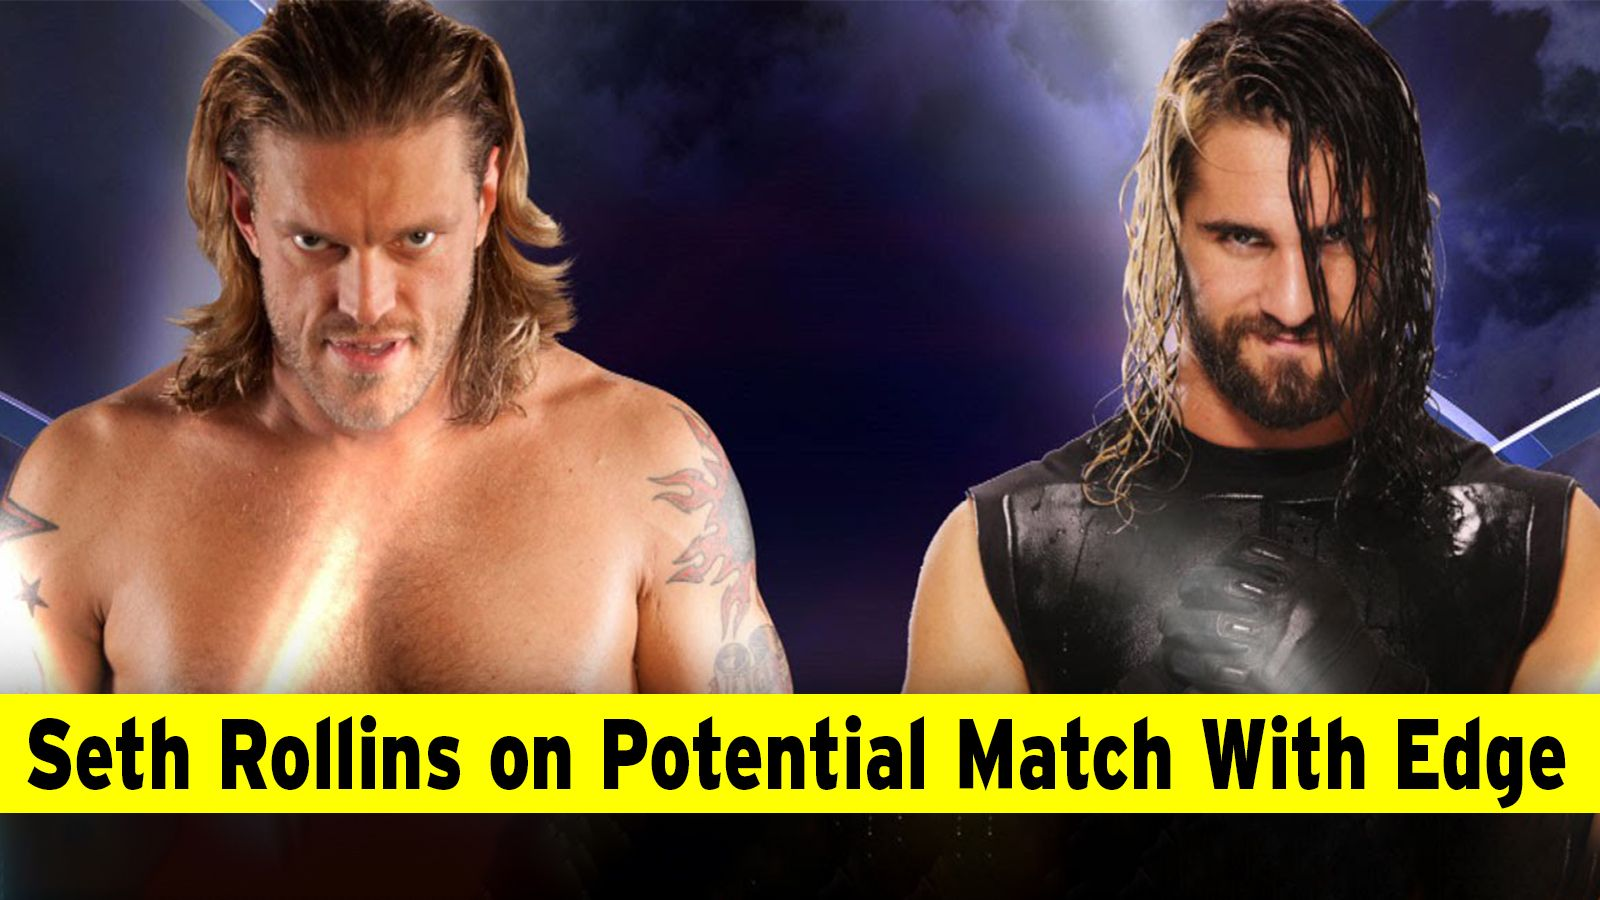 Seth Rollins On Potential Match With Edge In